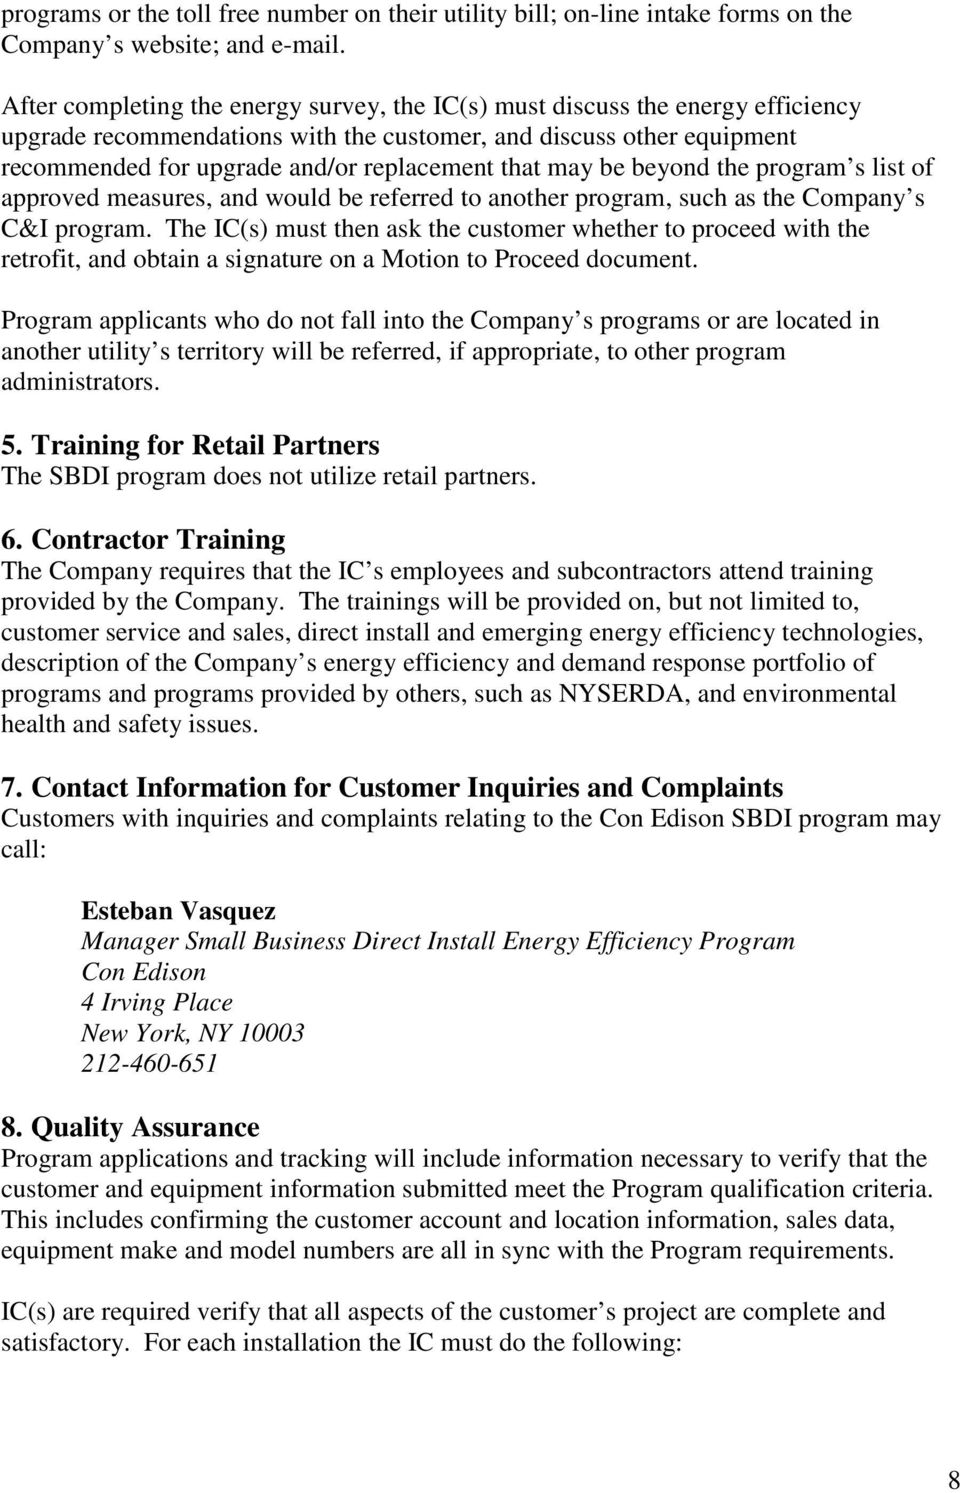 Small Business Direct Install Program Implementation Plan - PDF